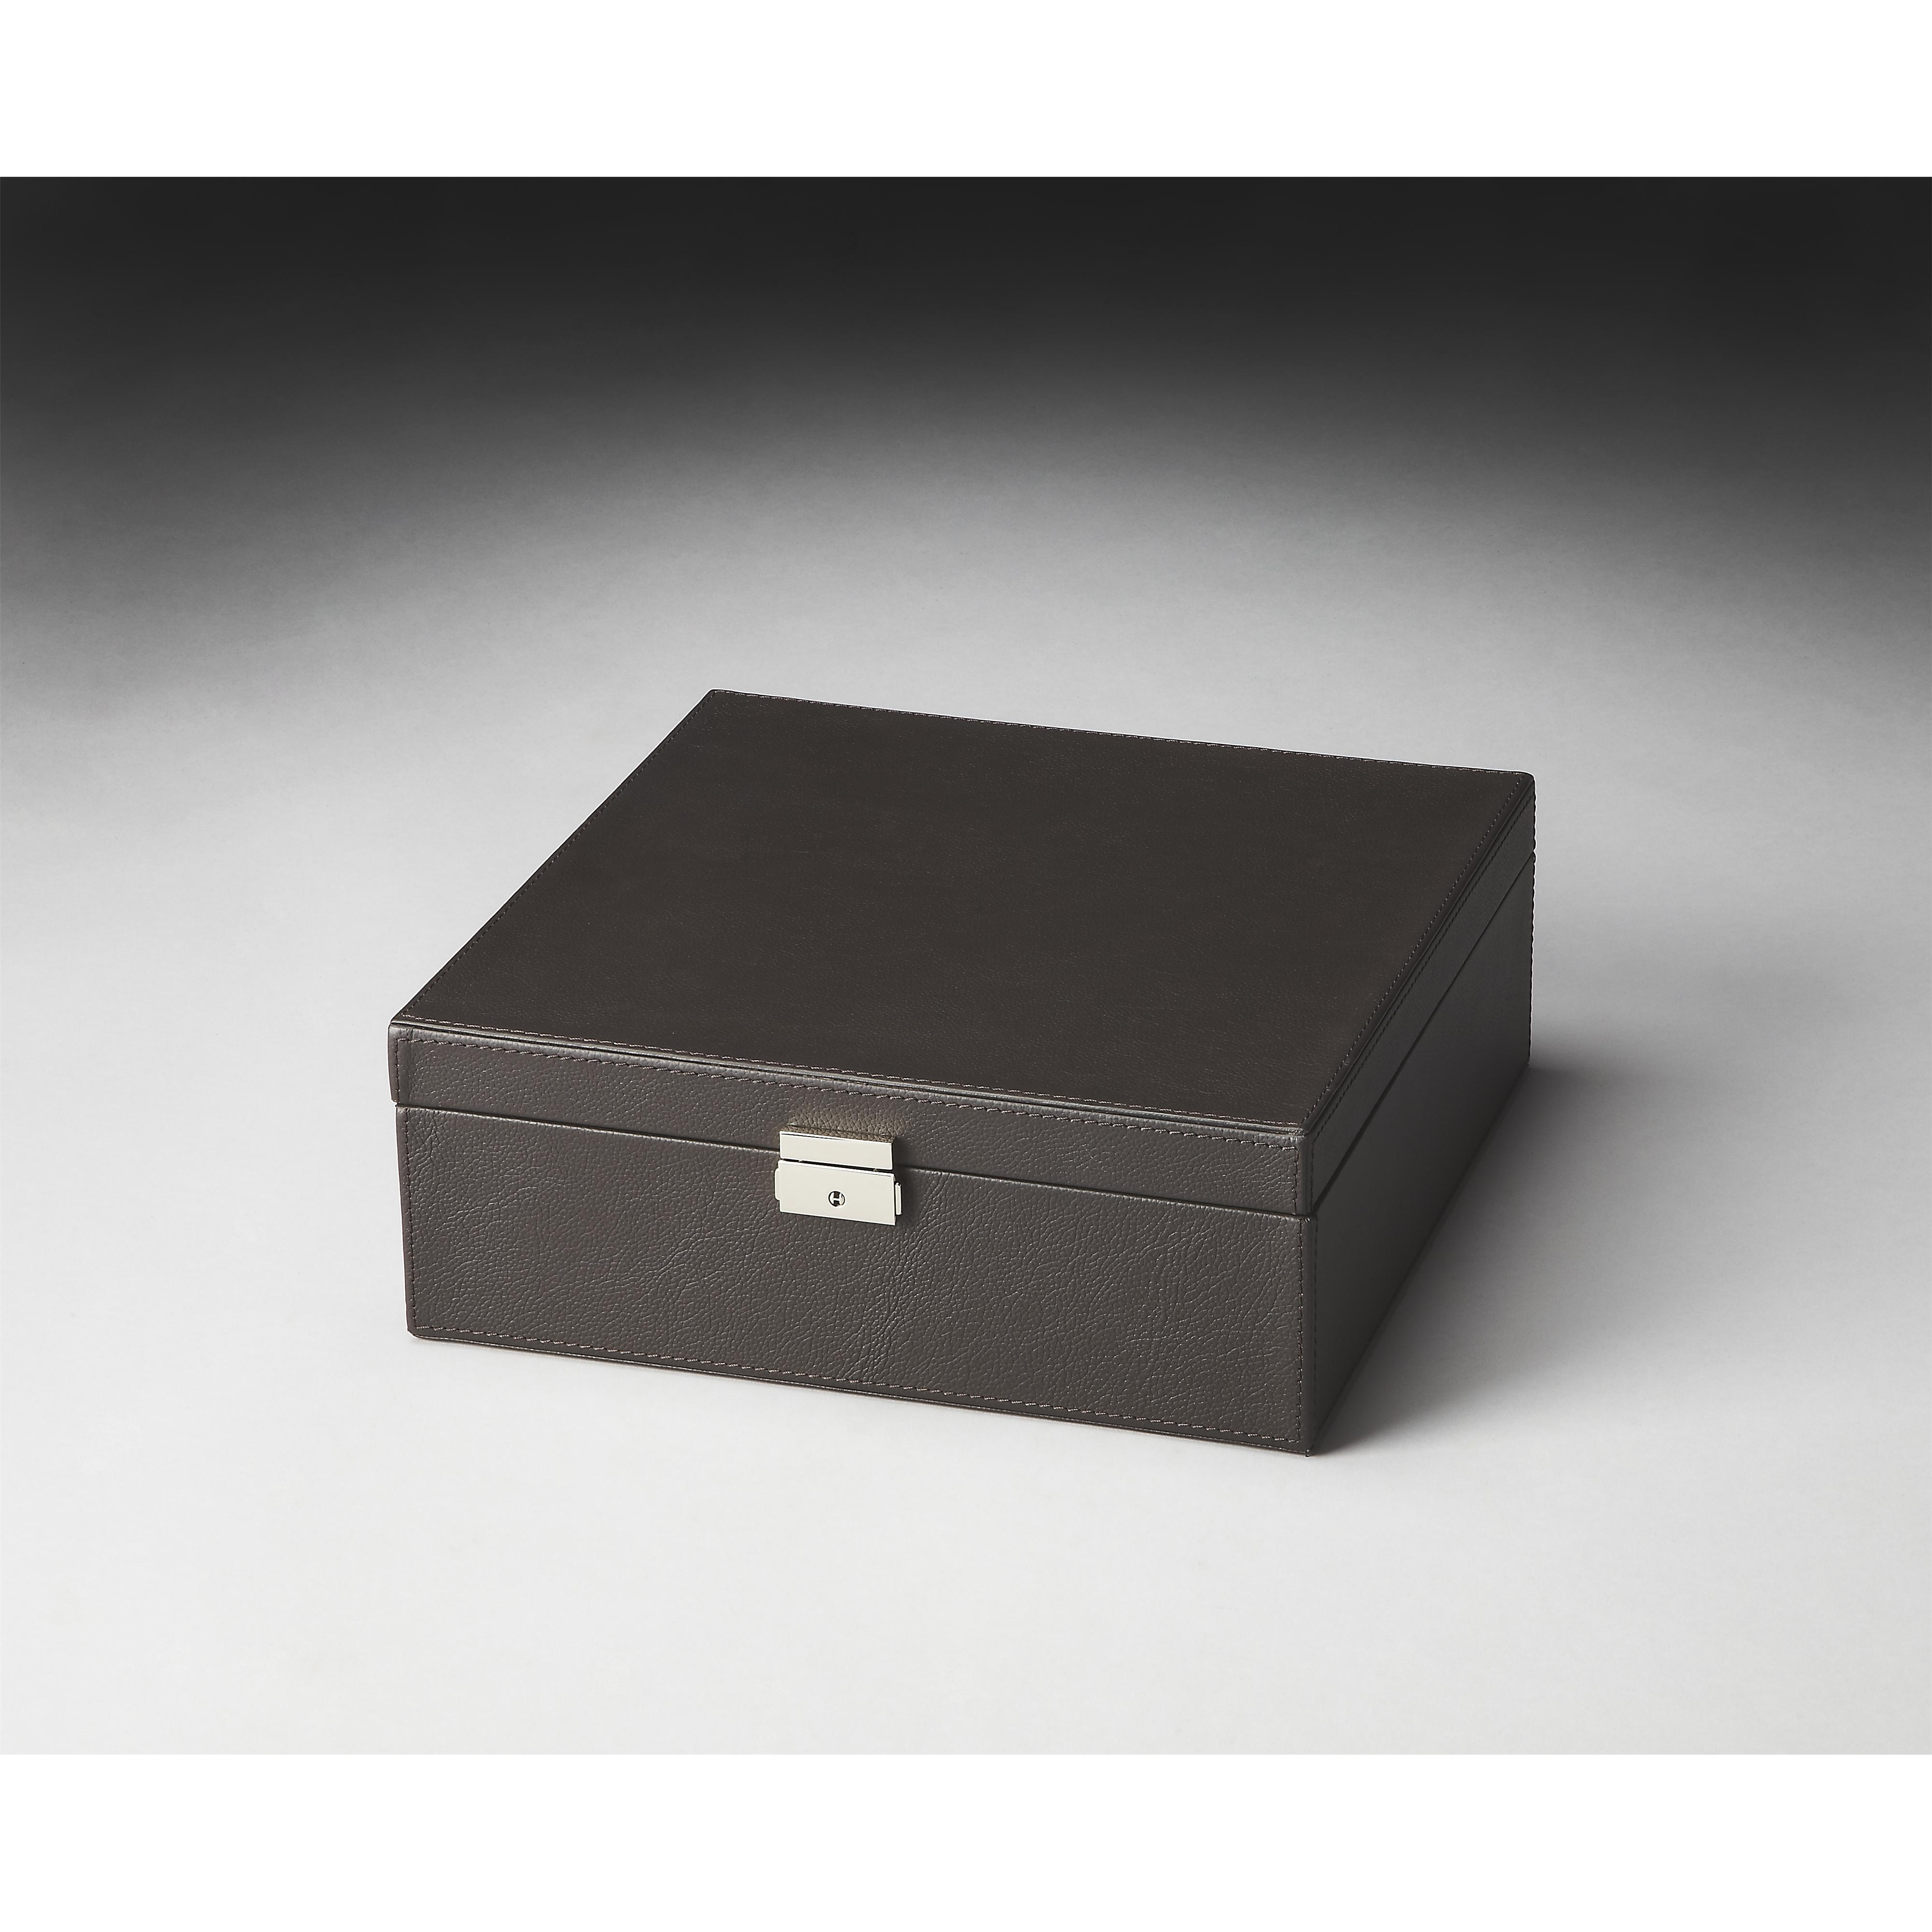 Butler Specialty Company Hors D'oeuvres Storage Case - Item Number: 2732034